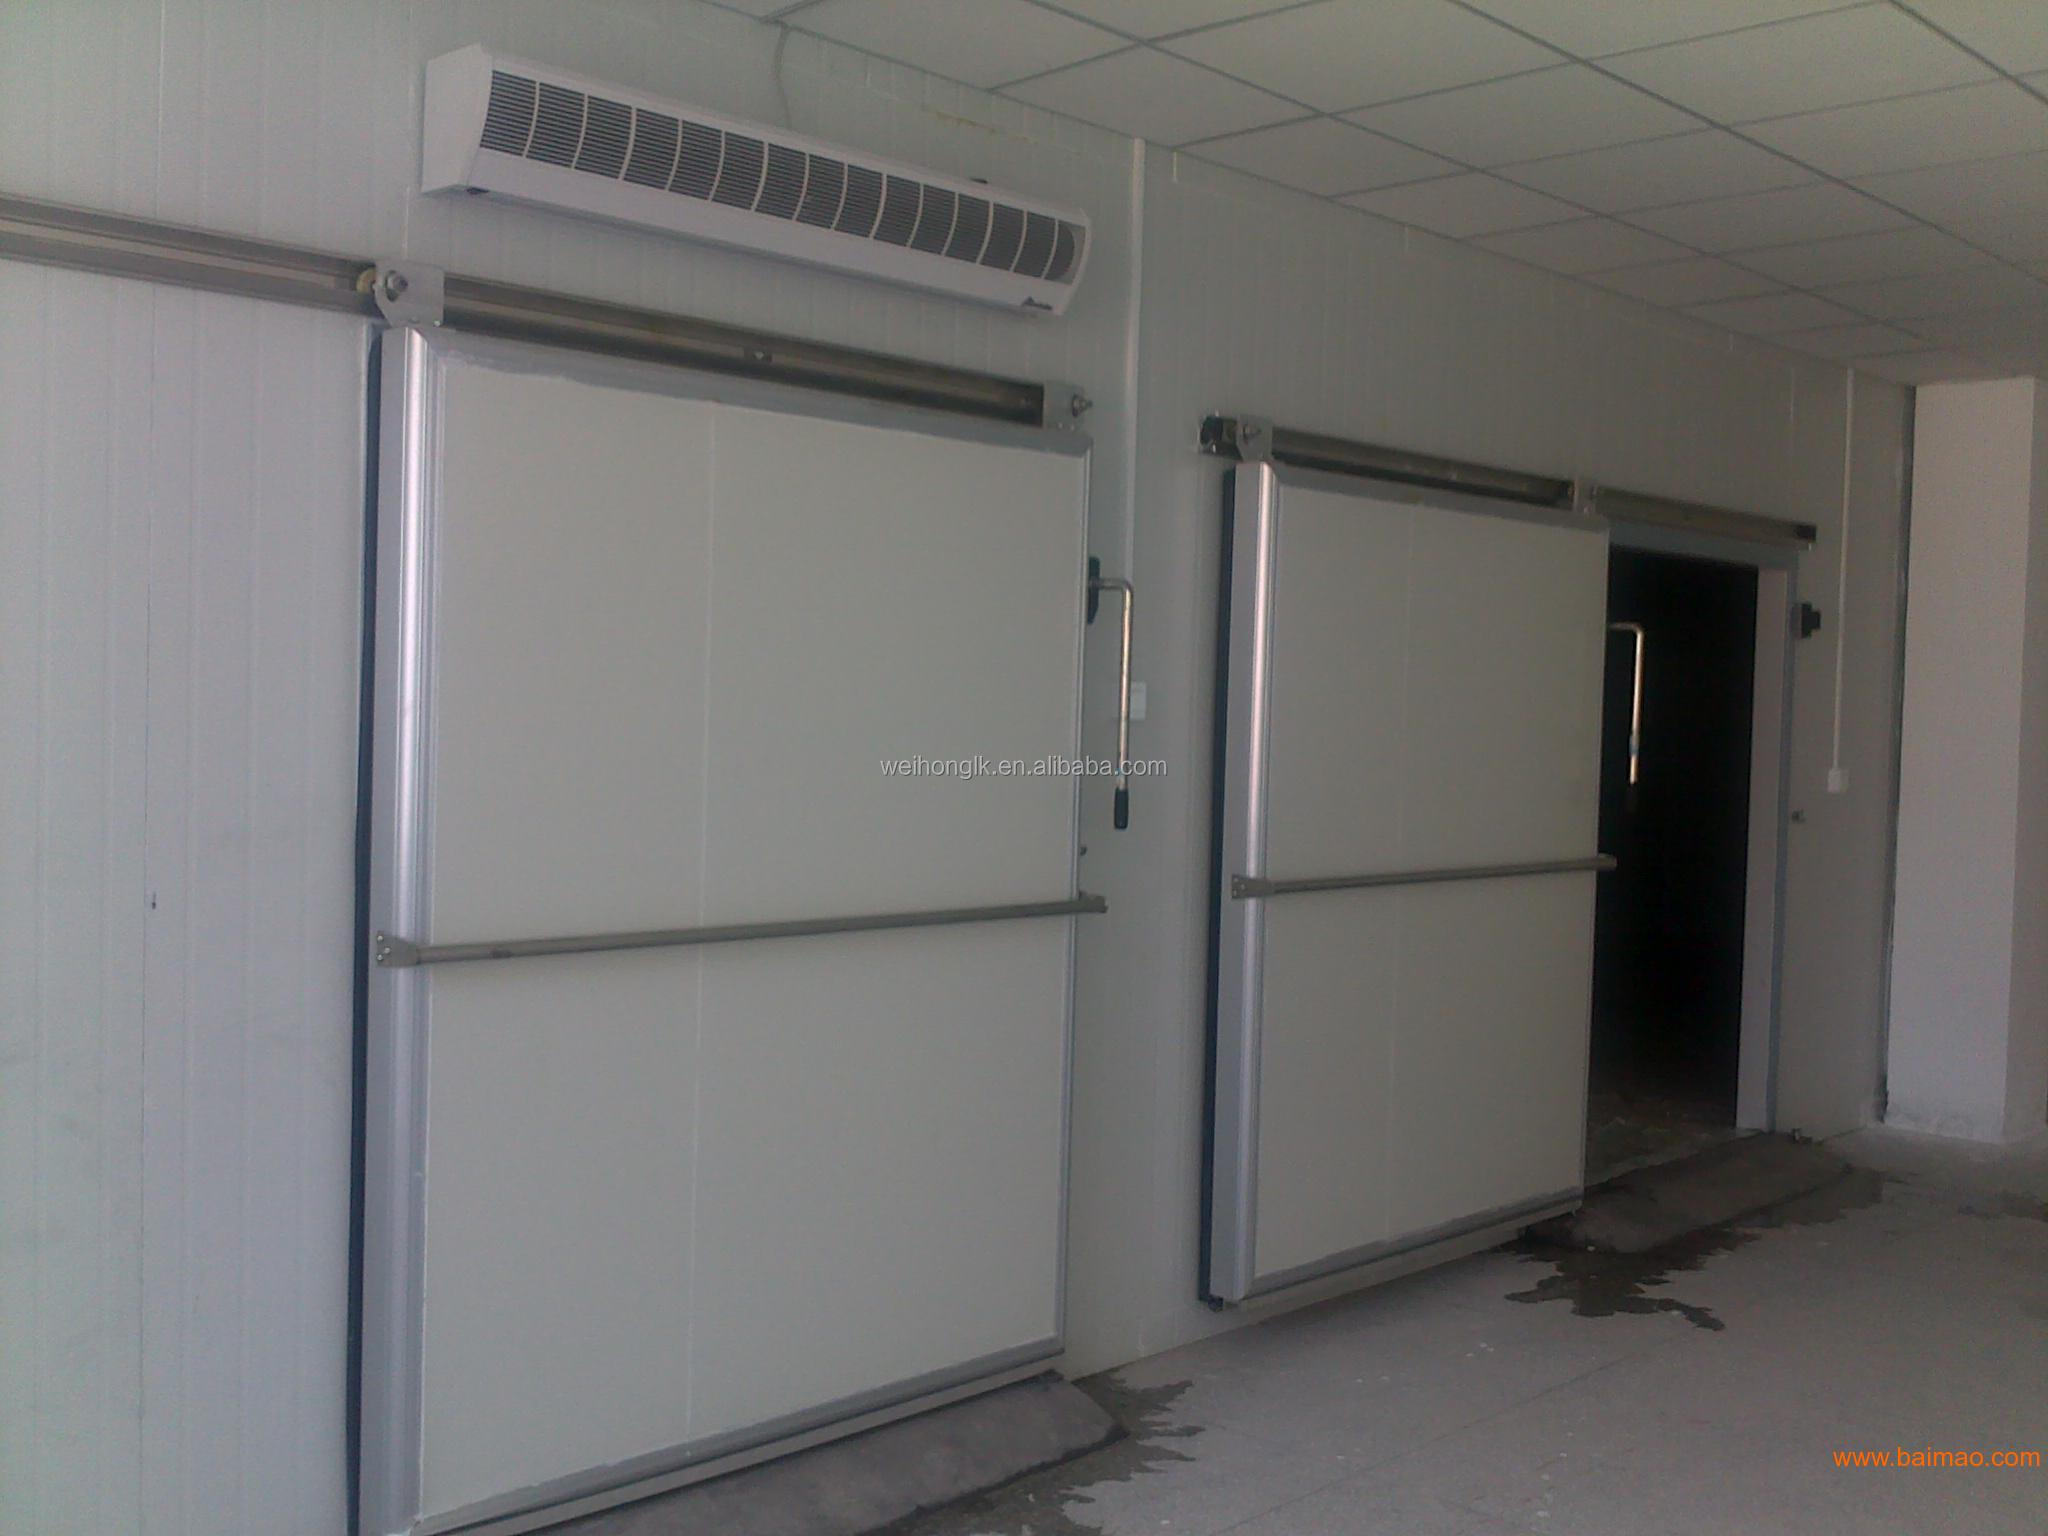 High quality China modular prefabricated fruits and vegetables cold storage